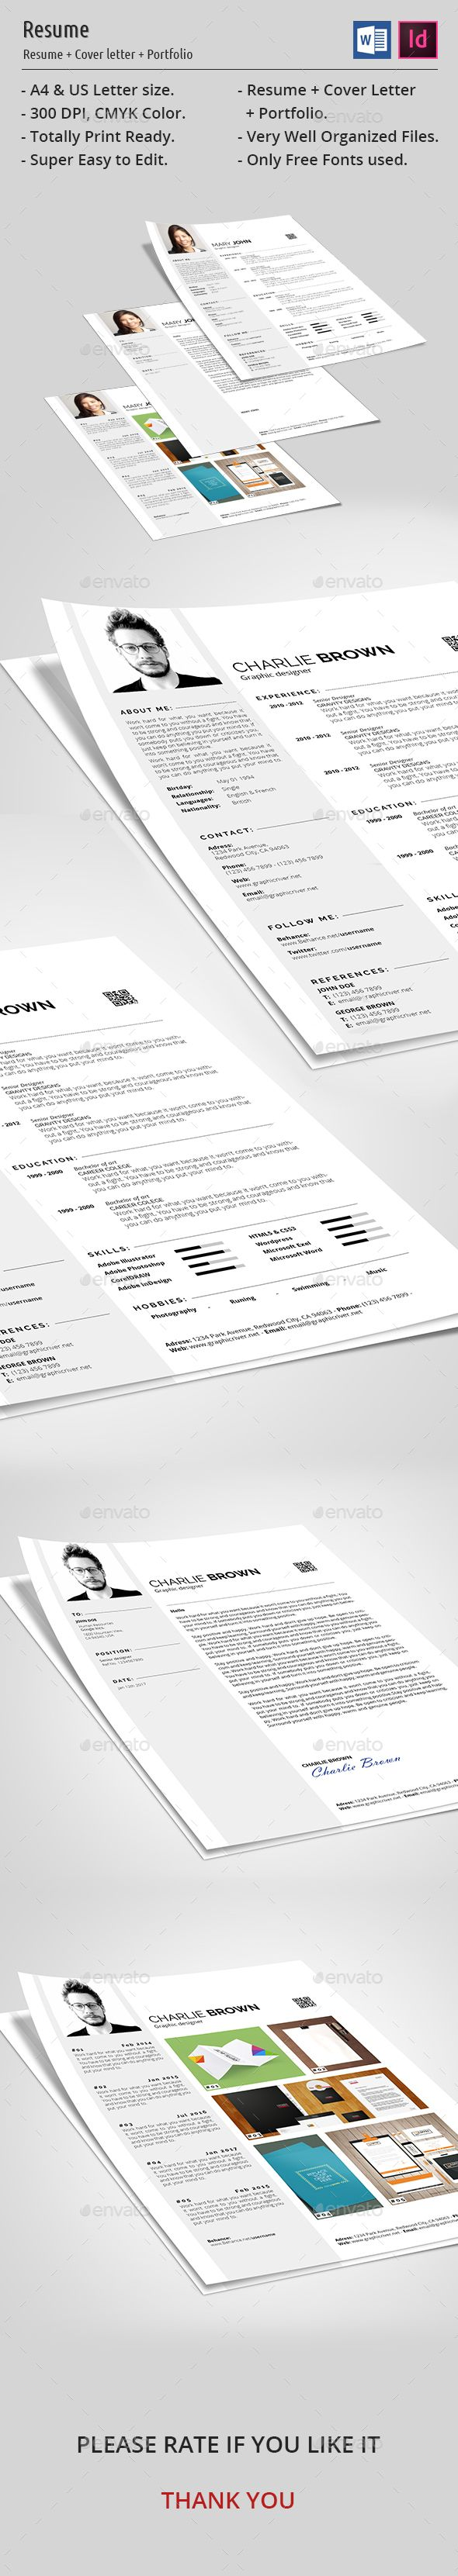 resume that can be edited